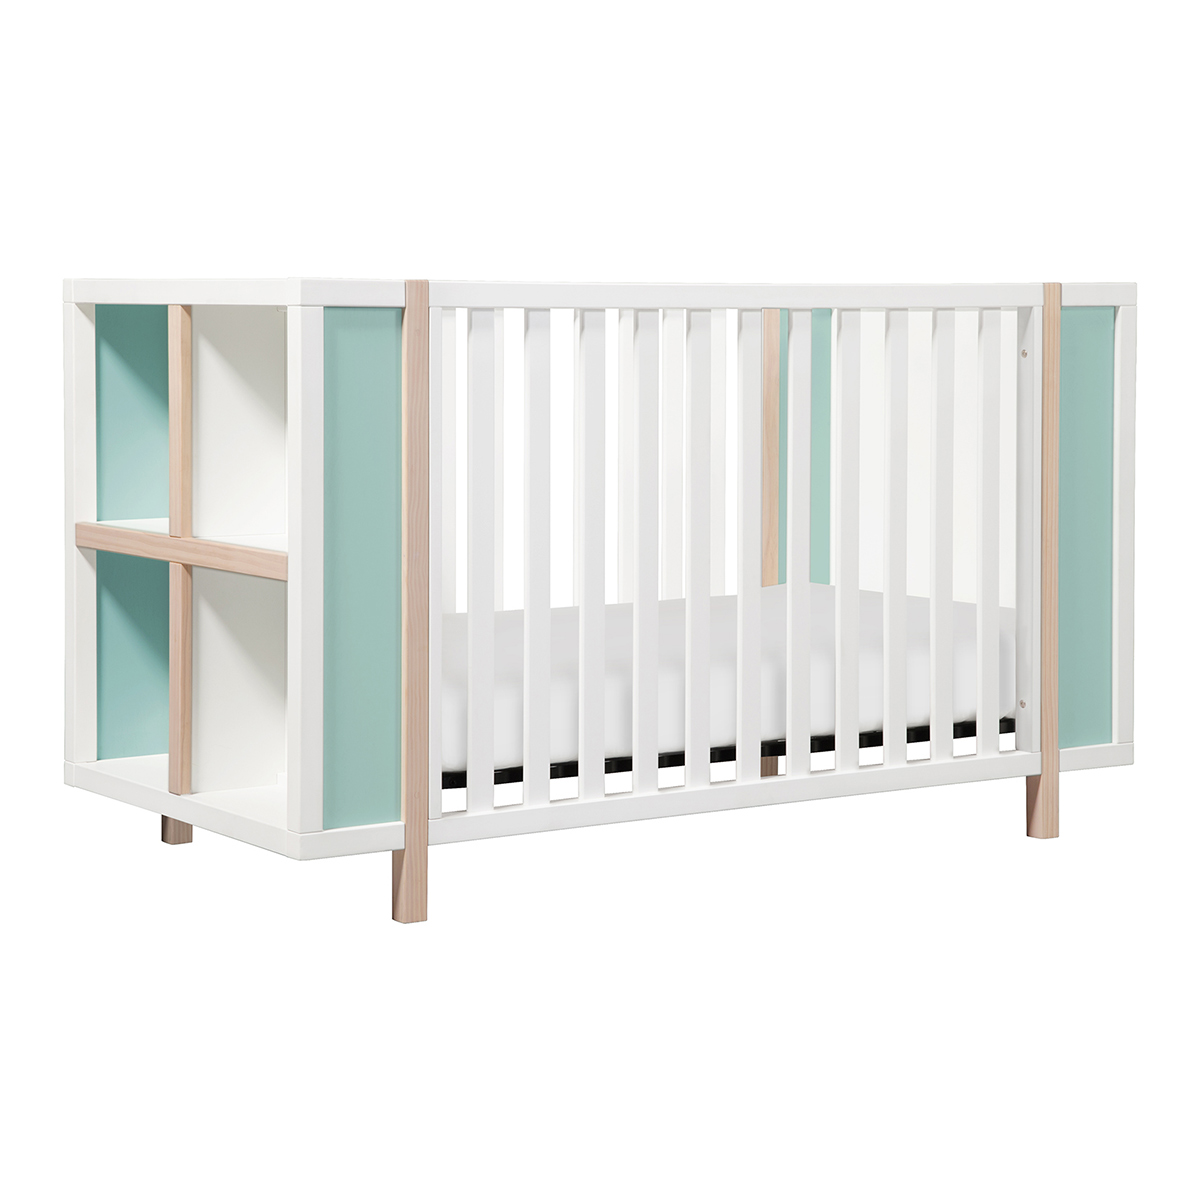 babyletto bingo in convertible crib and storage combo in white  - babyletto bingo in convertible crib and storage combo in white andwashed natural with cool mint free shipping